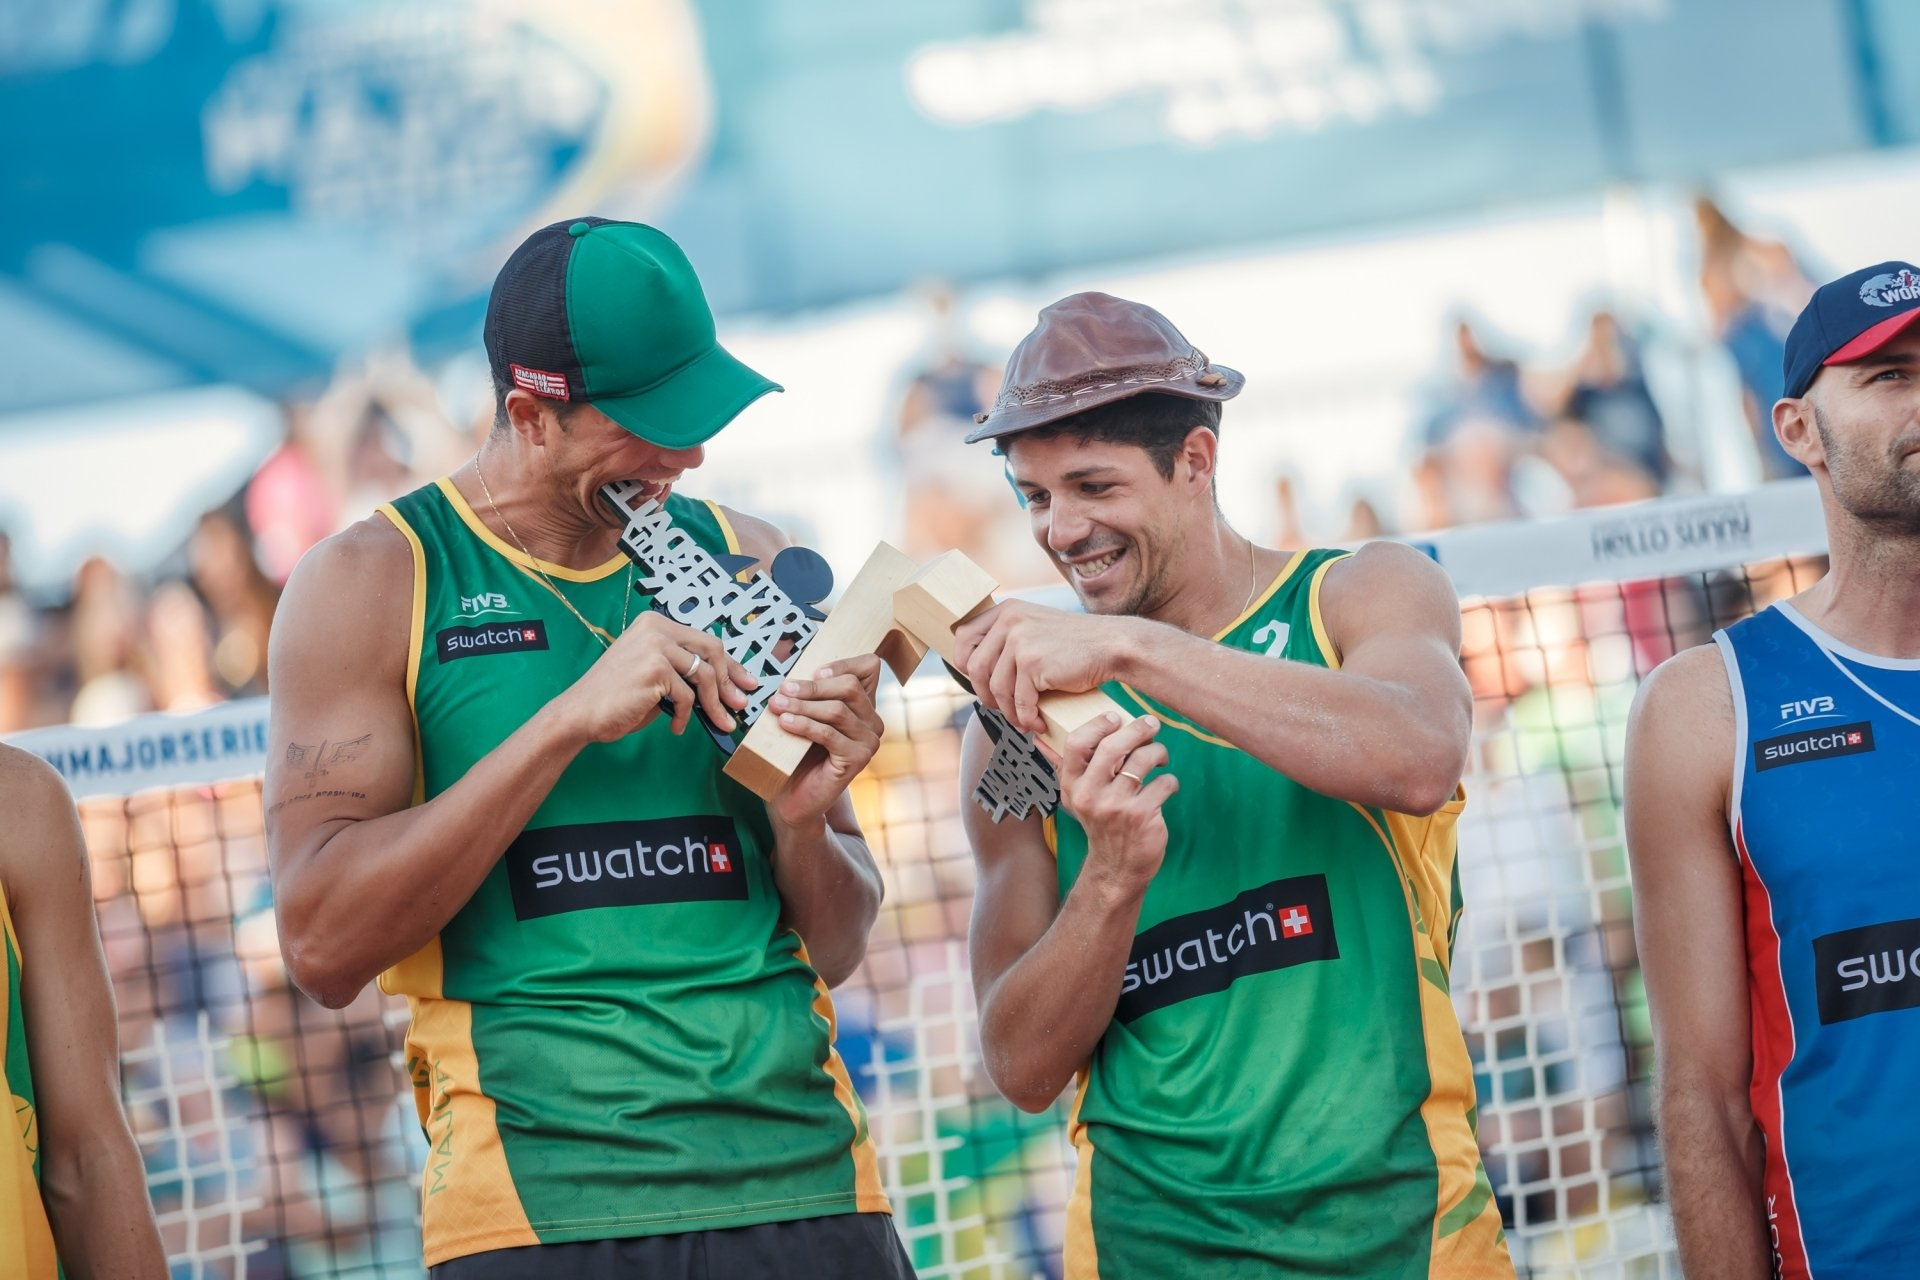 Saymon (left) and Alvaro won the #FTLMajor in the 2017 season